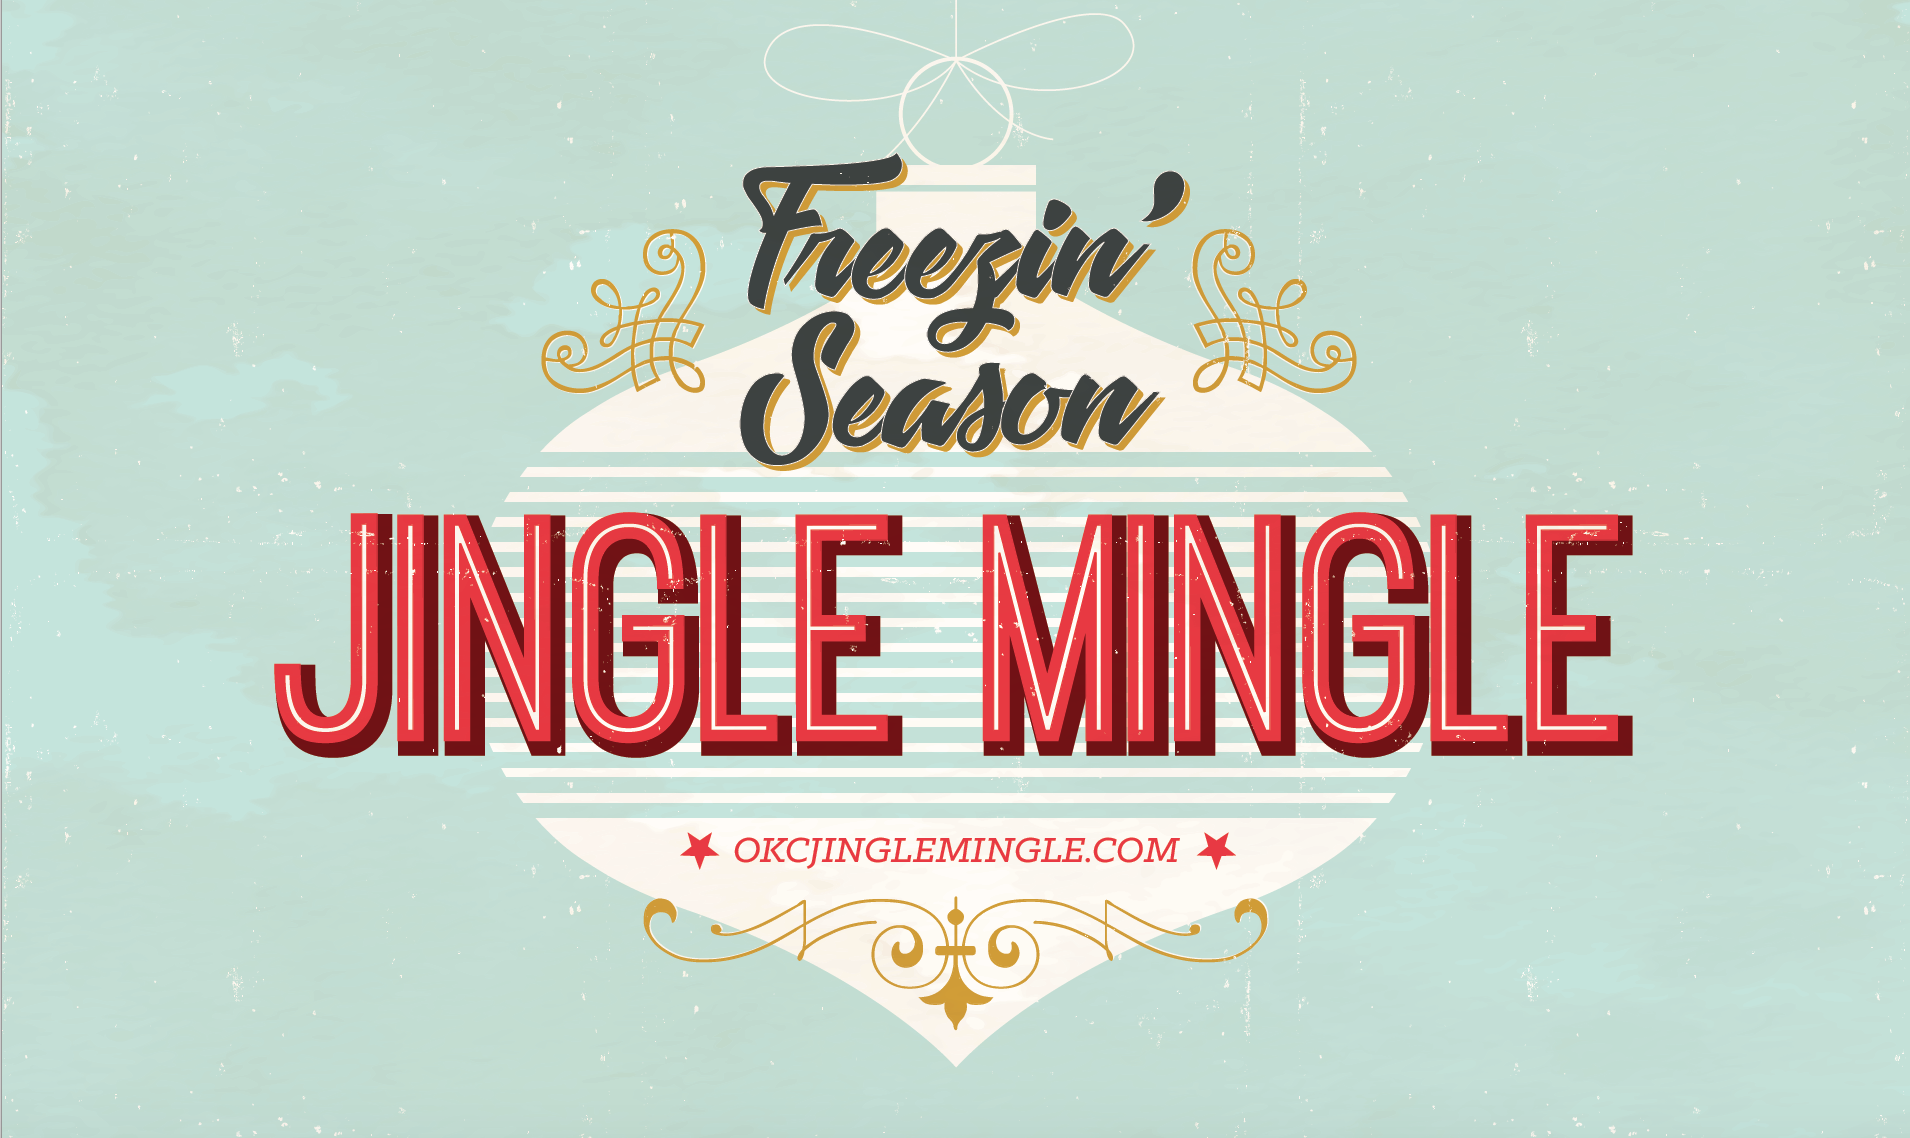 2017 Freezin' Season Jingle Mingle